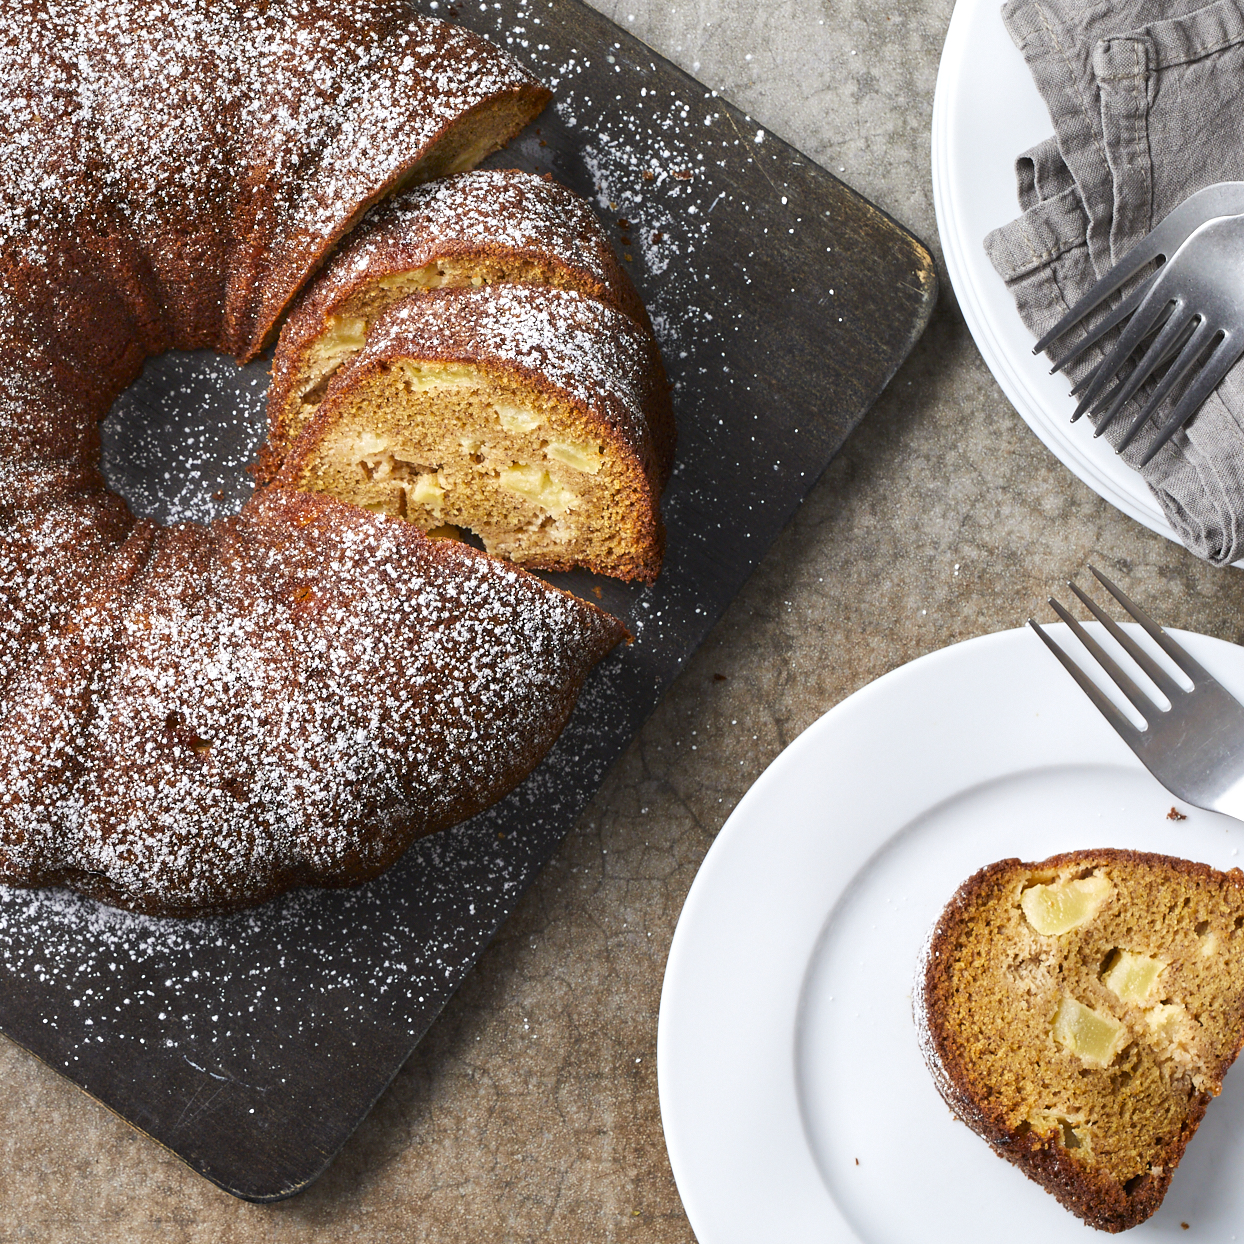 This simple nondairy apple cake, which is often called Jewish apple cake, has origins in Eastern Europe. Cinnamon and sweet-tart Granny Smith apples make for a fragrant cake, while orange juice in the batter adds a sweet, fresh touch. Make it for Rosh Hashana or any other fall holiday or occasion. The leftovers (if there are any) pair nicely with a cup of coffee the next morning.Source: EatingWell.com, June 2020